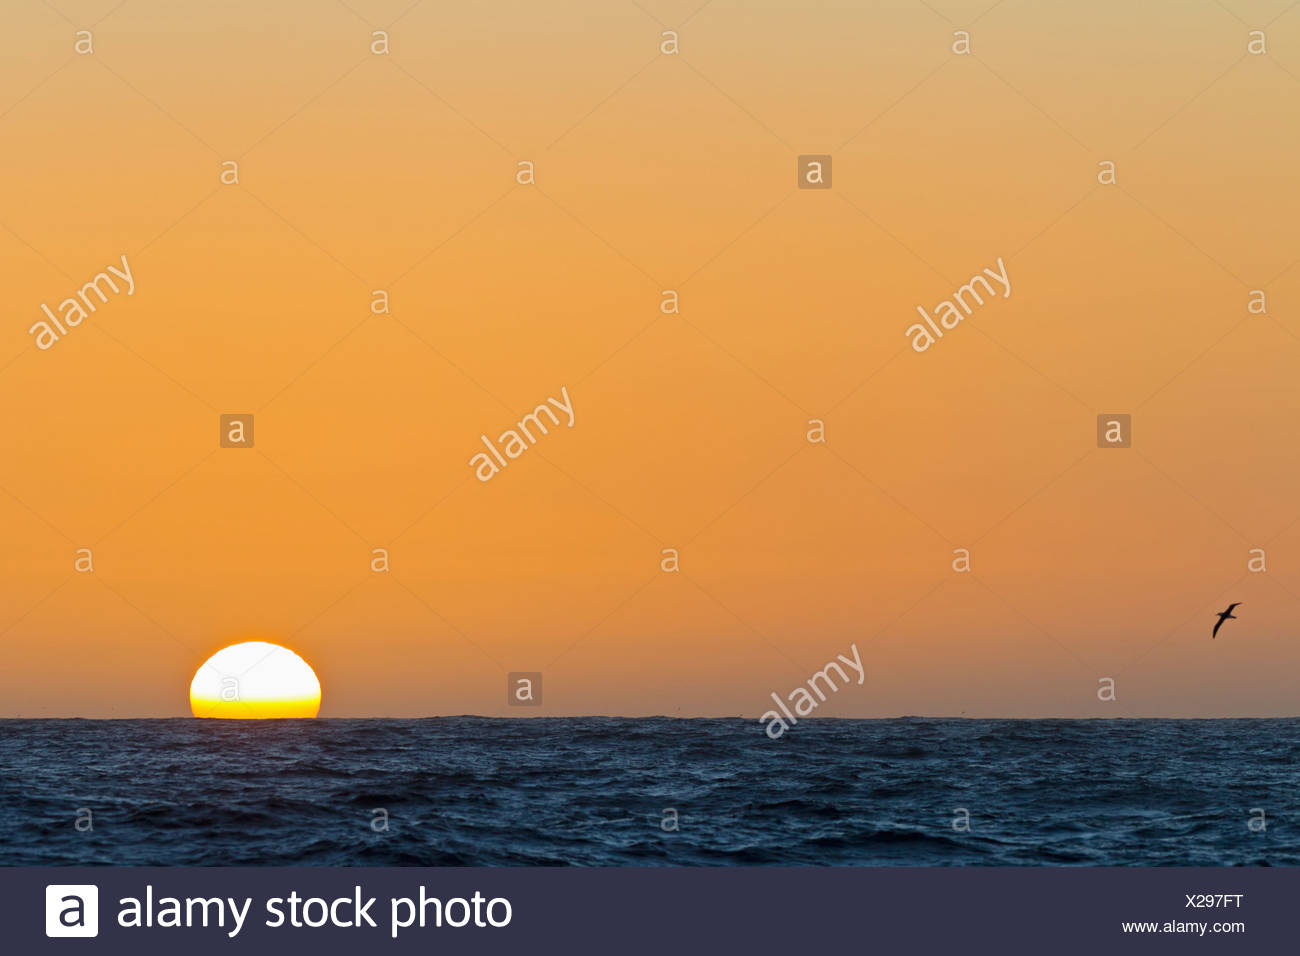 South Atlantic Ocean, View of sunset - Stock Image